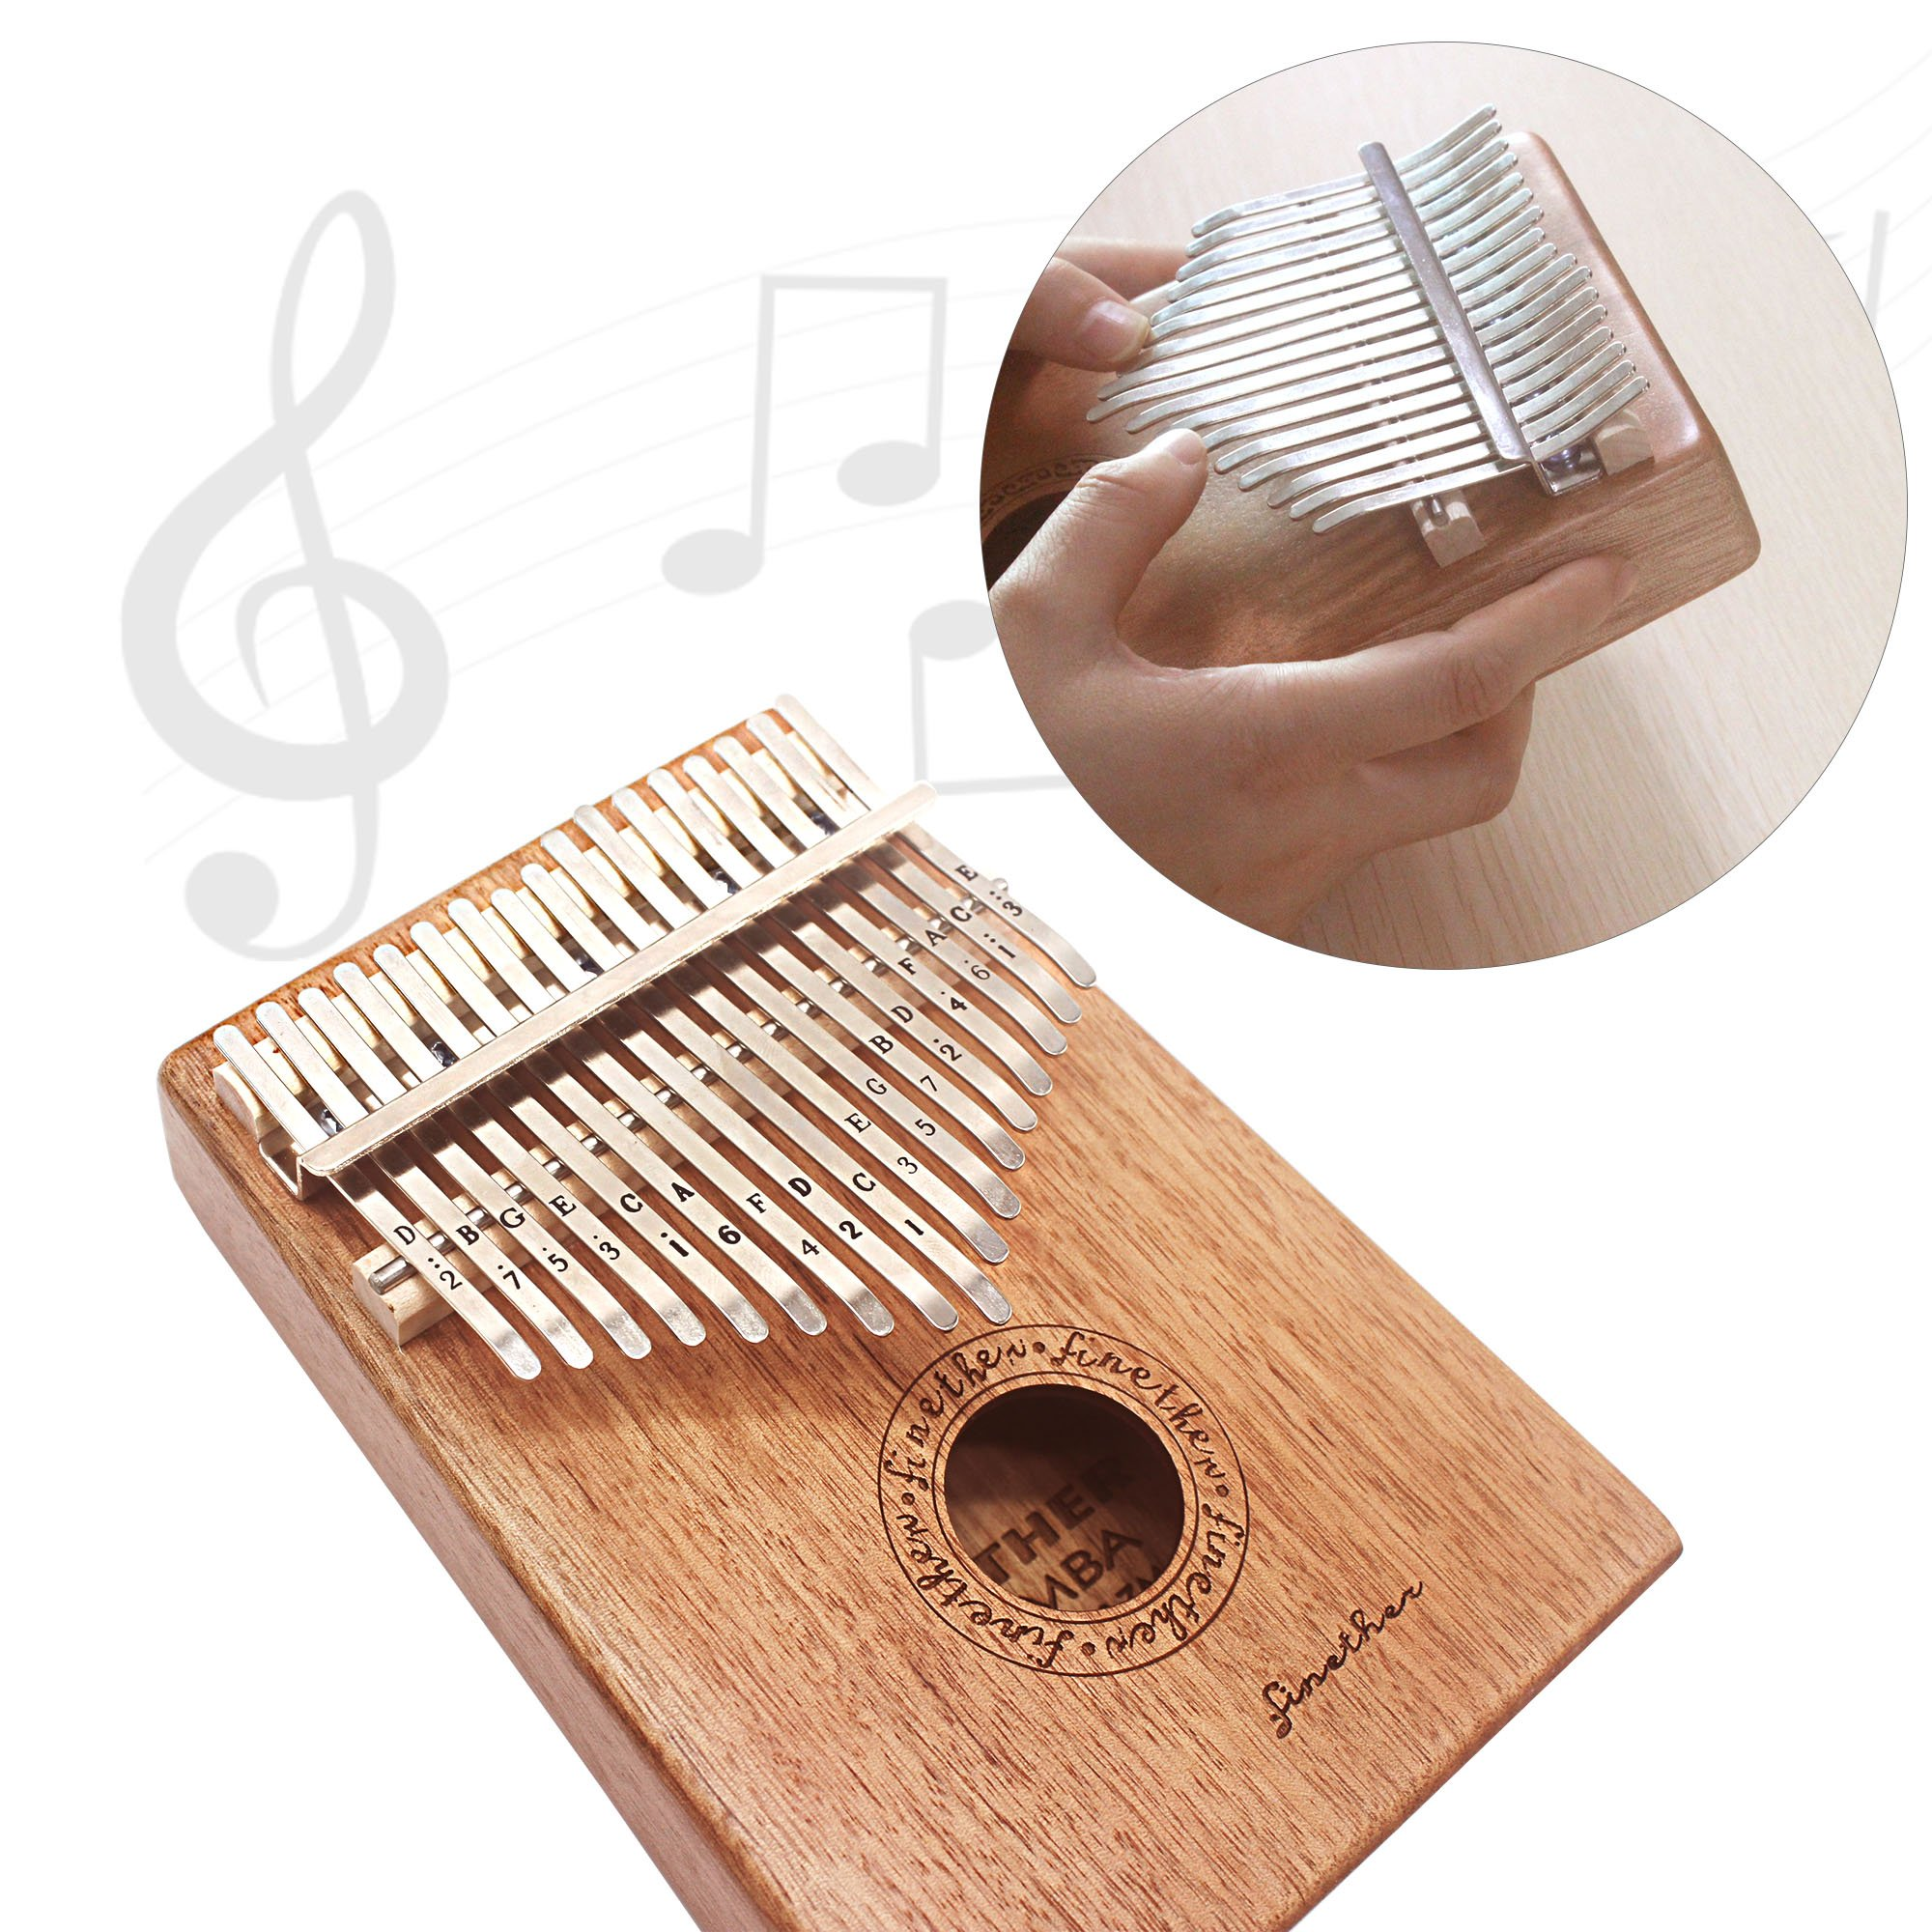 17 Keys Mahogany Kalimba Thumb Piano Wood Mbira Sanza Finger Percussion Pocket Keyboard w/Calibrating Tune Hammer for Beginners and Children (Mahogany) by AHongem (Image #4)